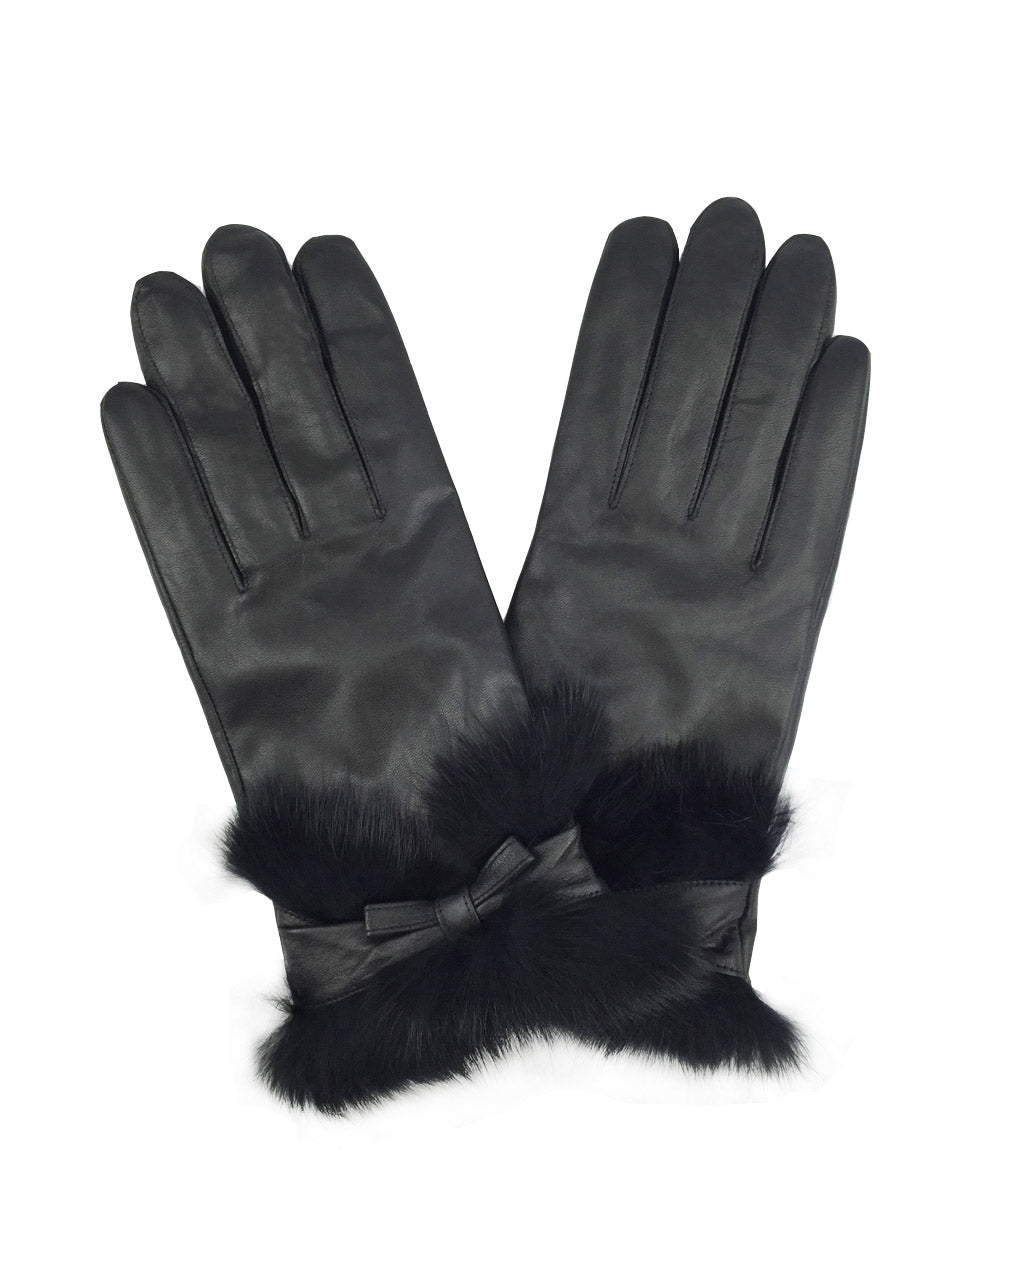 YISEVEN Women's Elegant Lambskin Leather Gloves Rabbit Fur